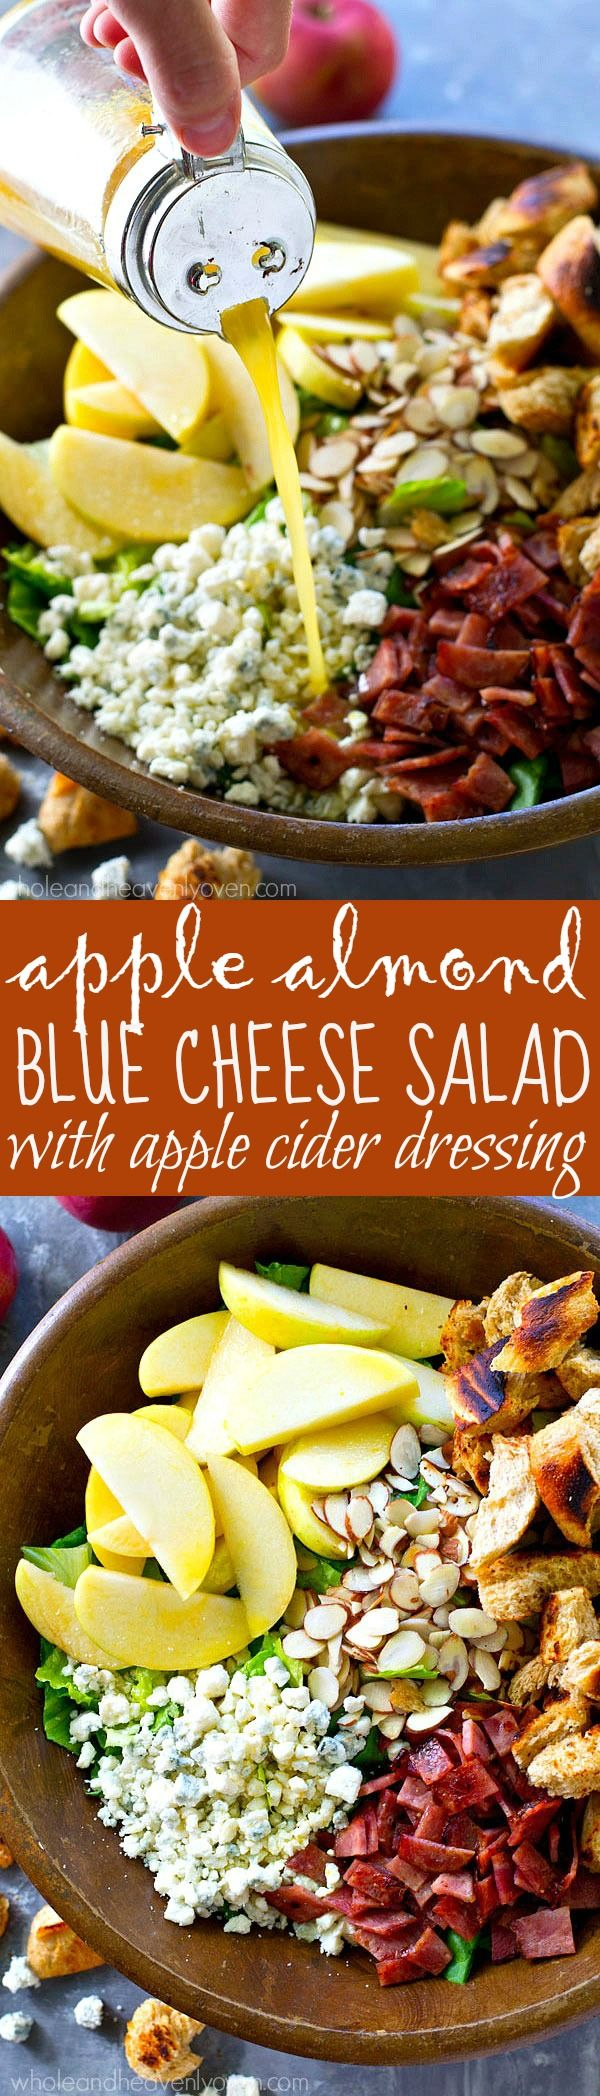 This fall-style apple salad is packed with tons of seasonal fall goodness and a tangy-sweet apple cider dressing drizzled on top brings all the amazing flavors together! (Fall Salad Recipes)